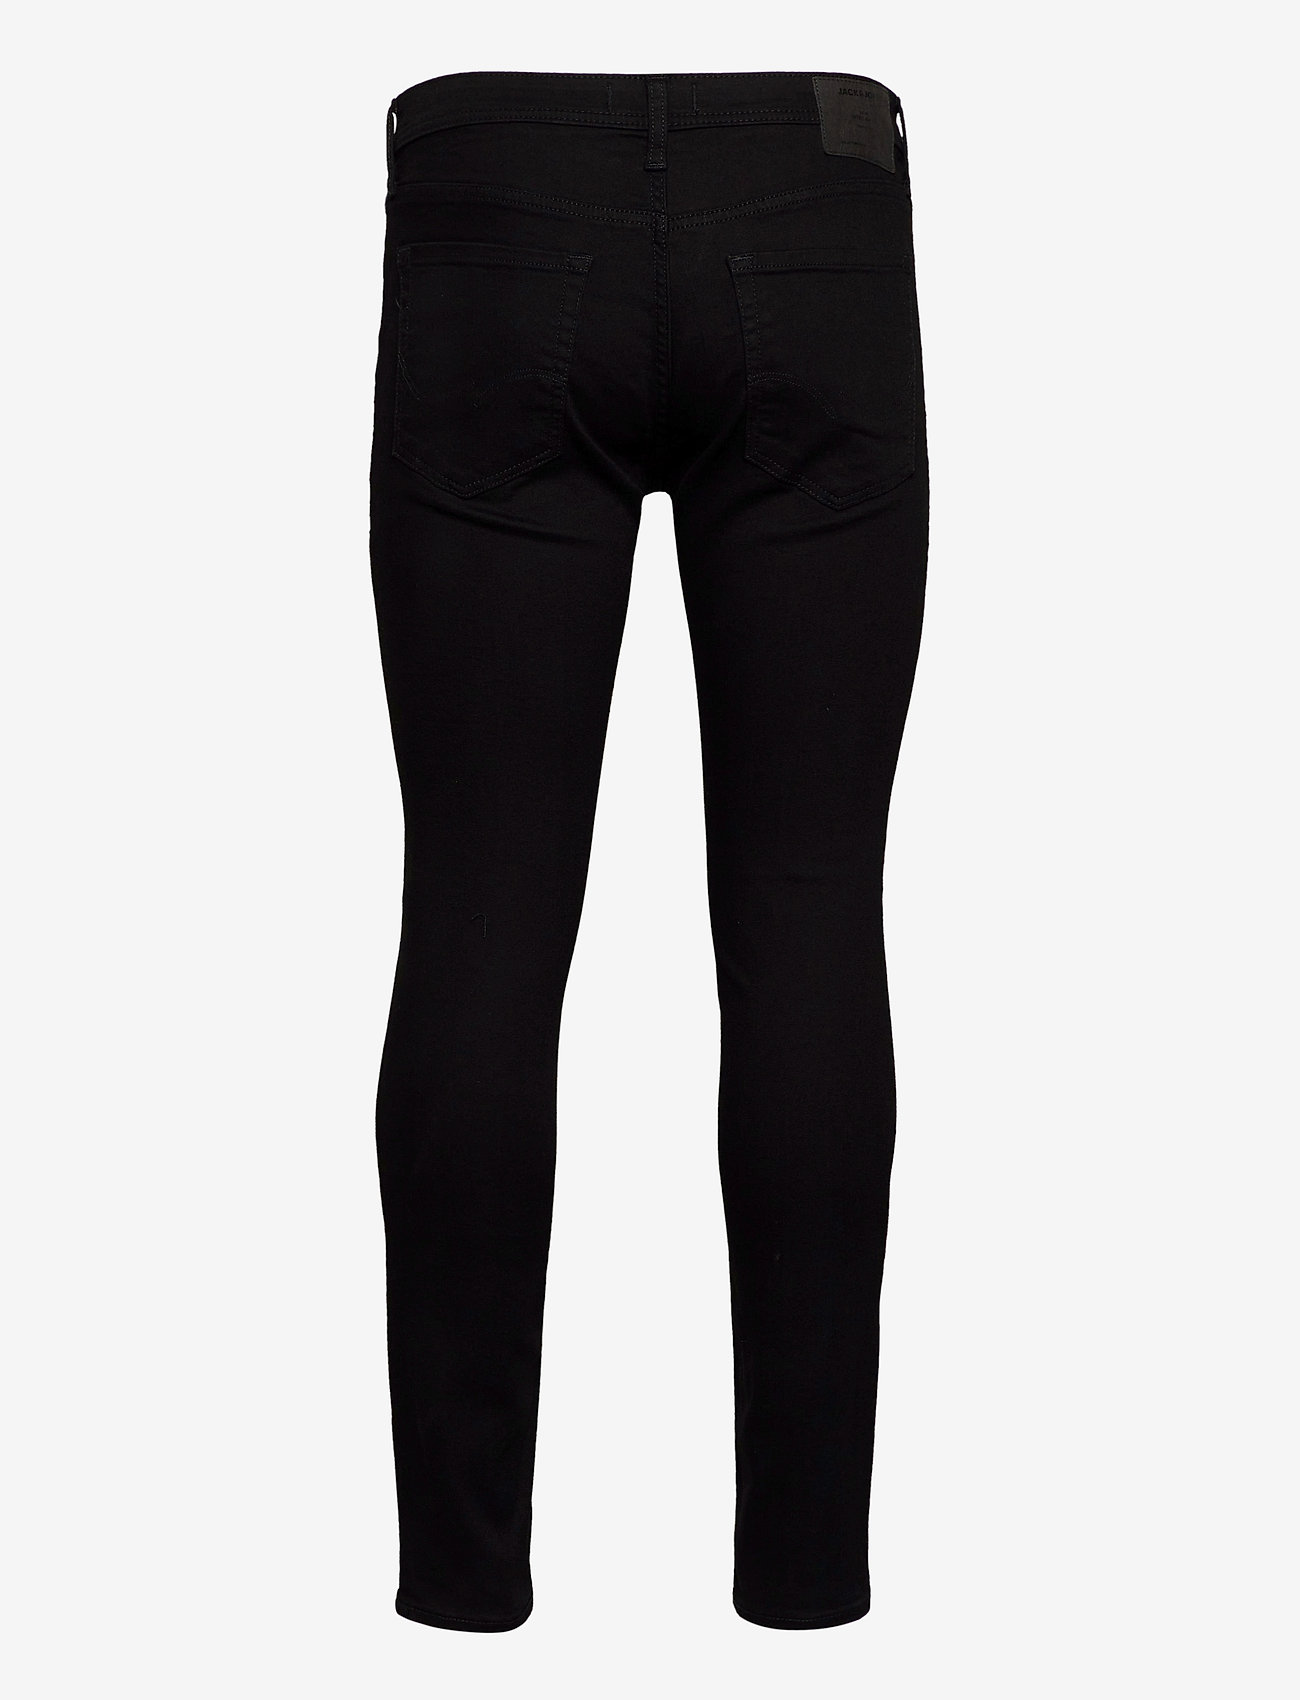 Jack & Jones - JJILIAM JJORIGINAL AM 816 NOOS - slim jeans - black denim - 1